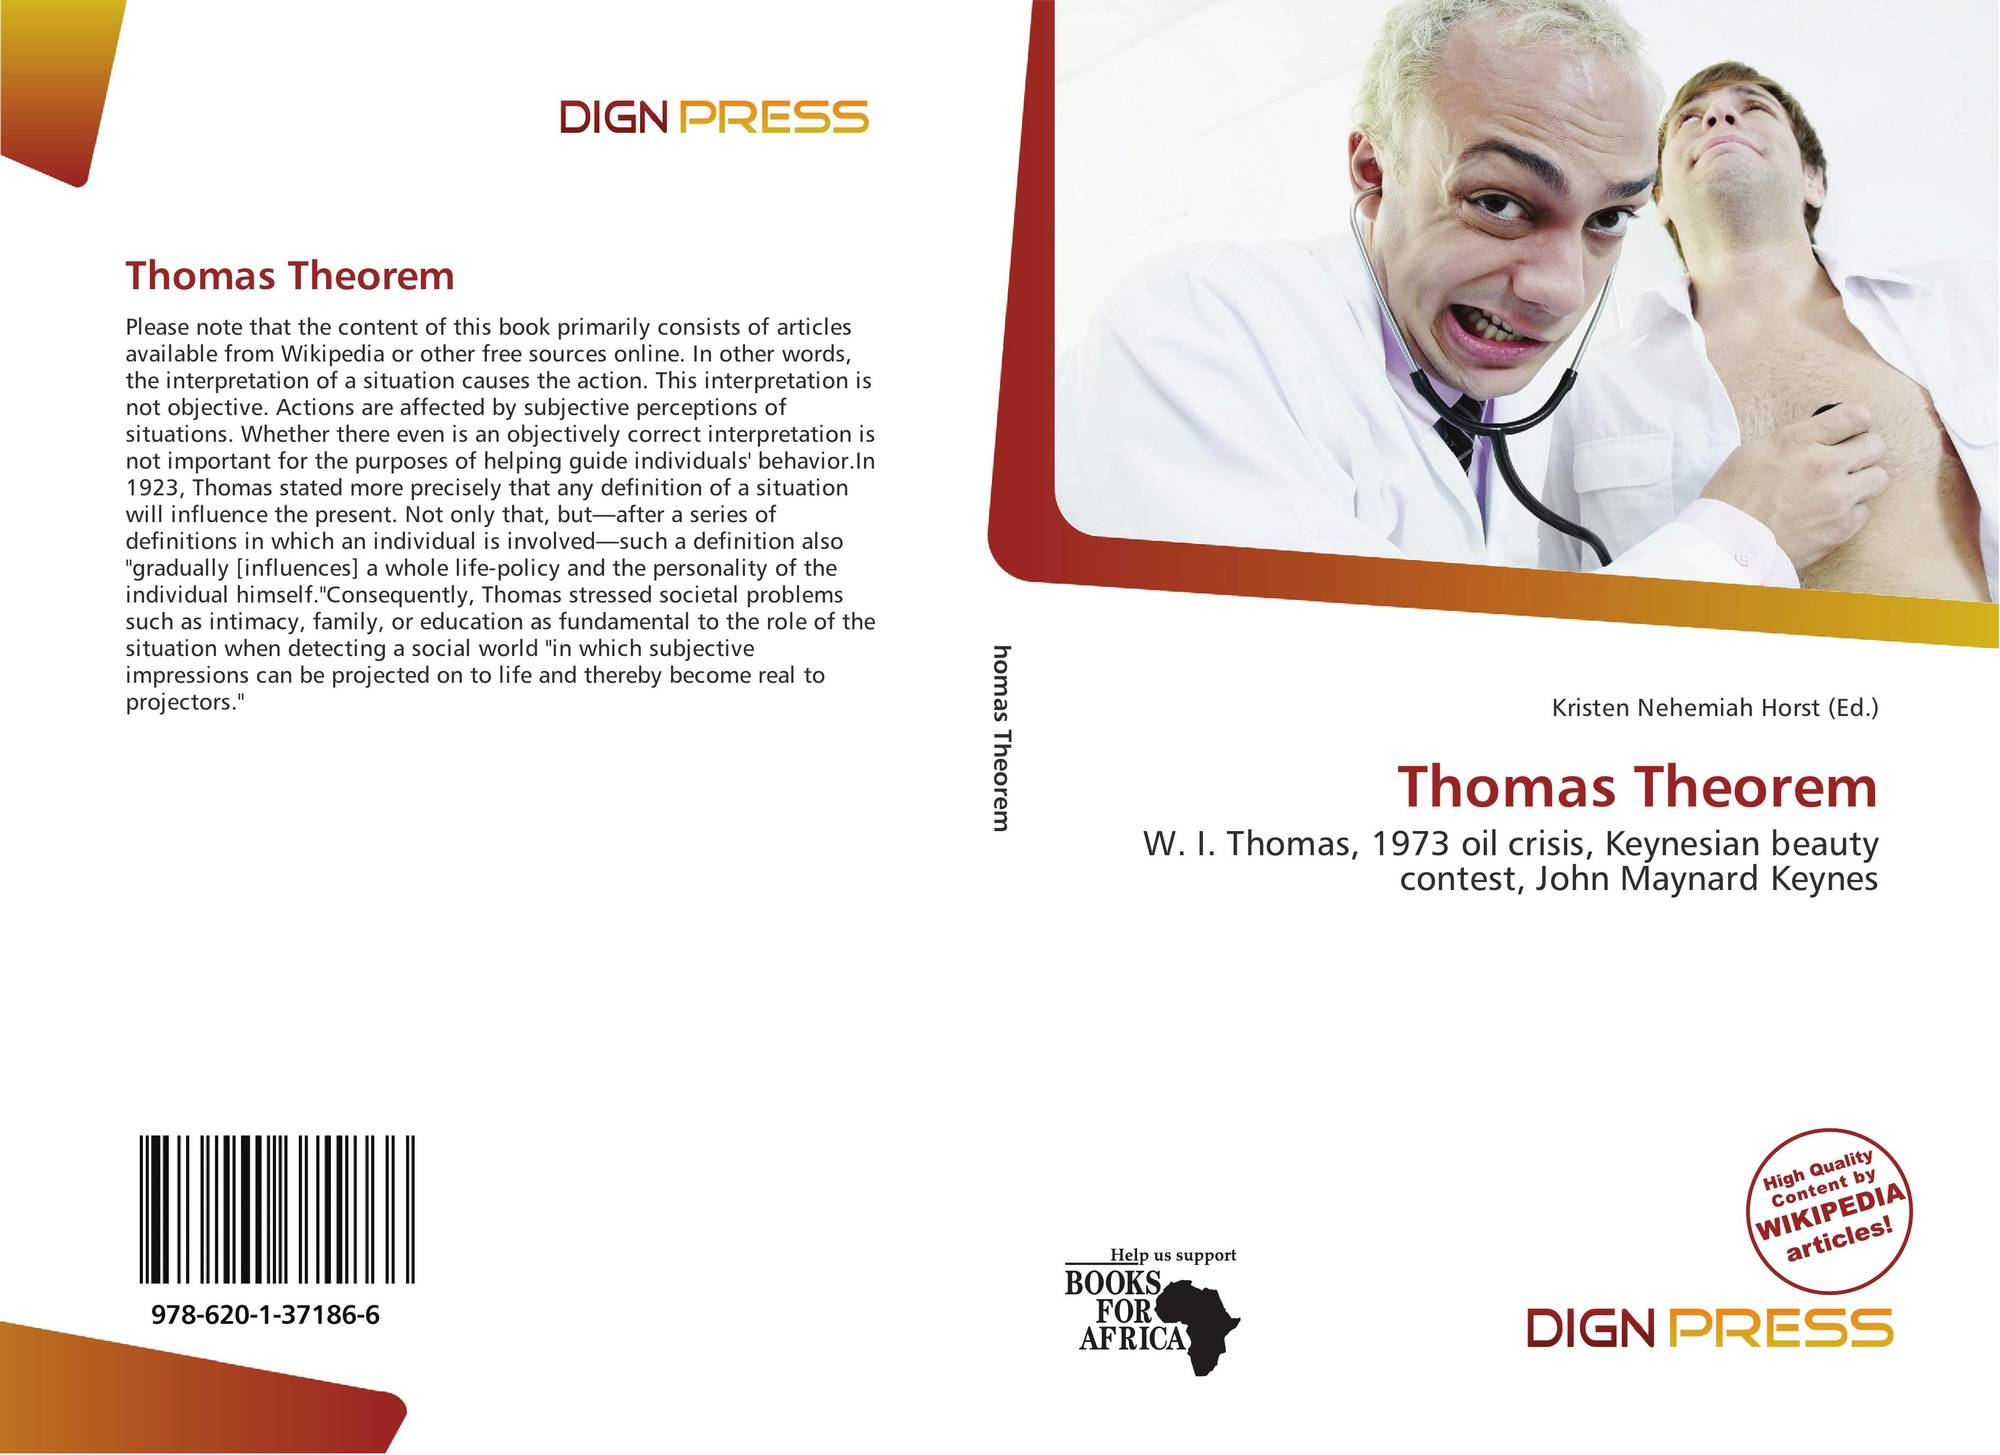 thomas theorem Start studying chapter 4 sociology learn vocabulary, terms, and more with flashcards, games, and other study tools search create log in sign up log in sign up the thomas theorem was created by wi thomas (1931) the thomas theorem states if people define situations as real, they.